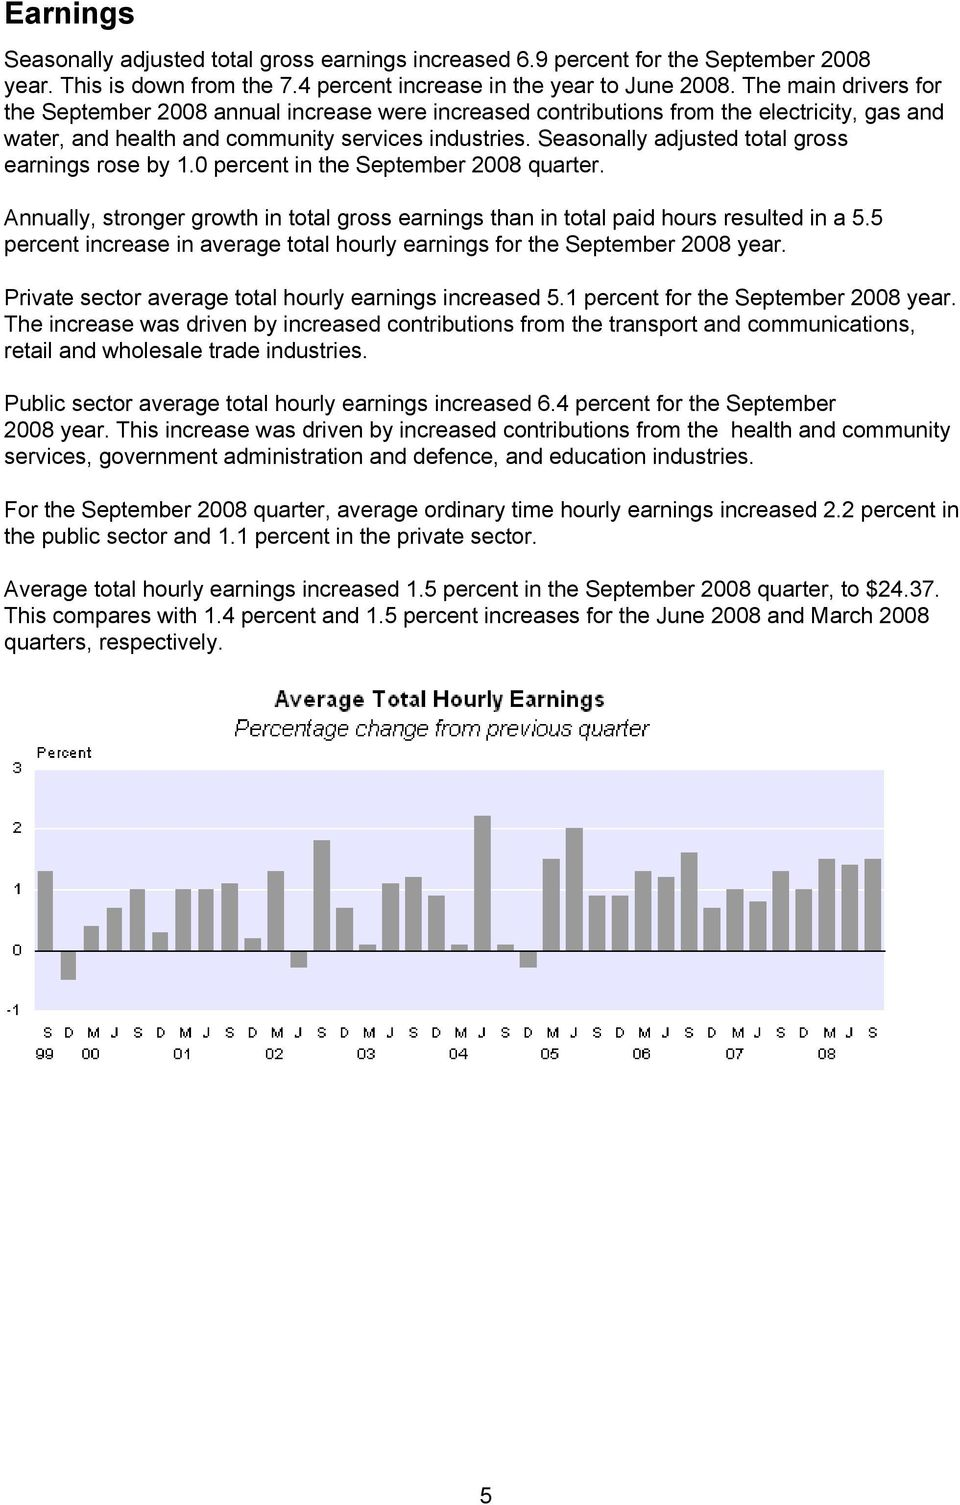 Seasonally adjusted total gross earnings rose by 1.0 percent in the September 2008 quarter. Annually, stronger growth in total gross earnings than in total paid hours resulted in a 5.